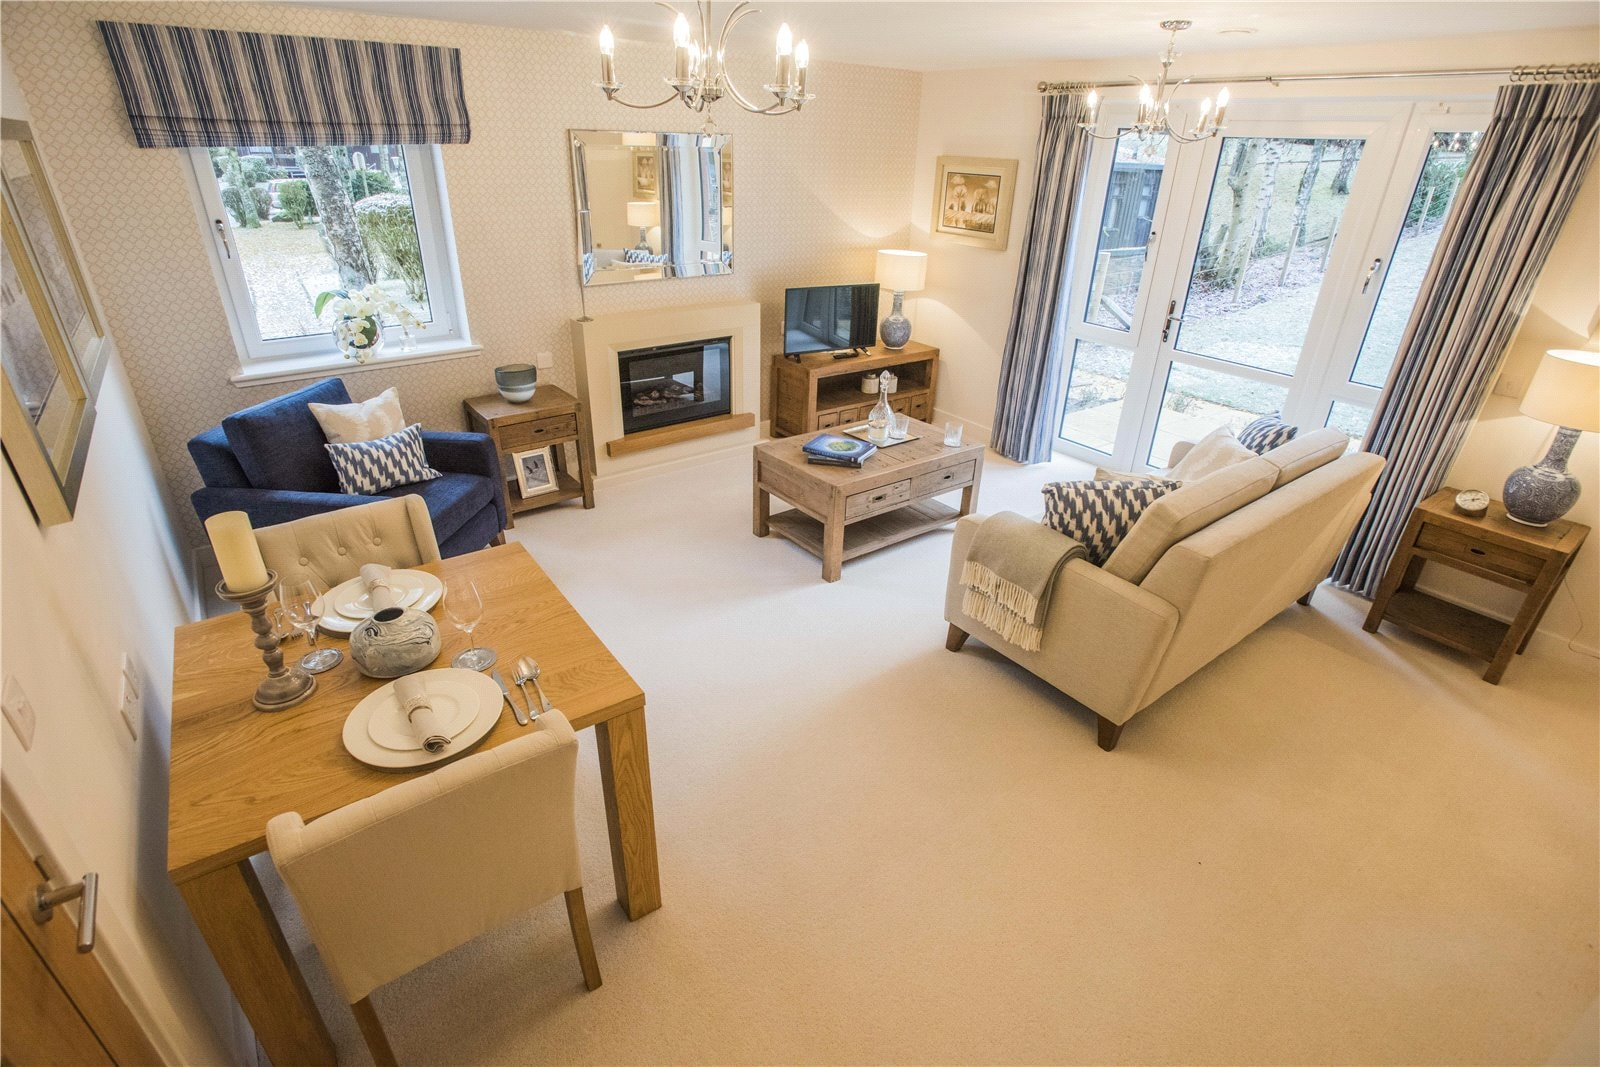 Luxury retirement homes for sale in the charming town of Blairgowrie